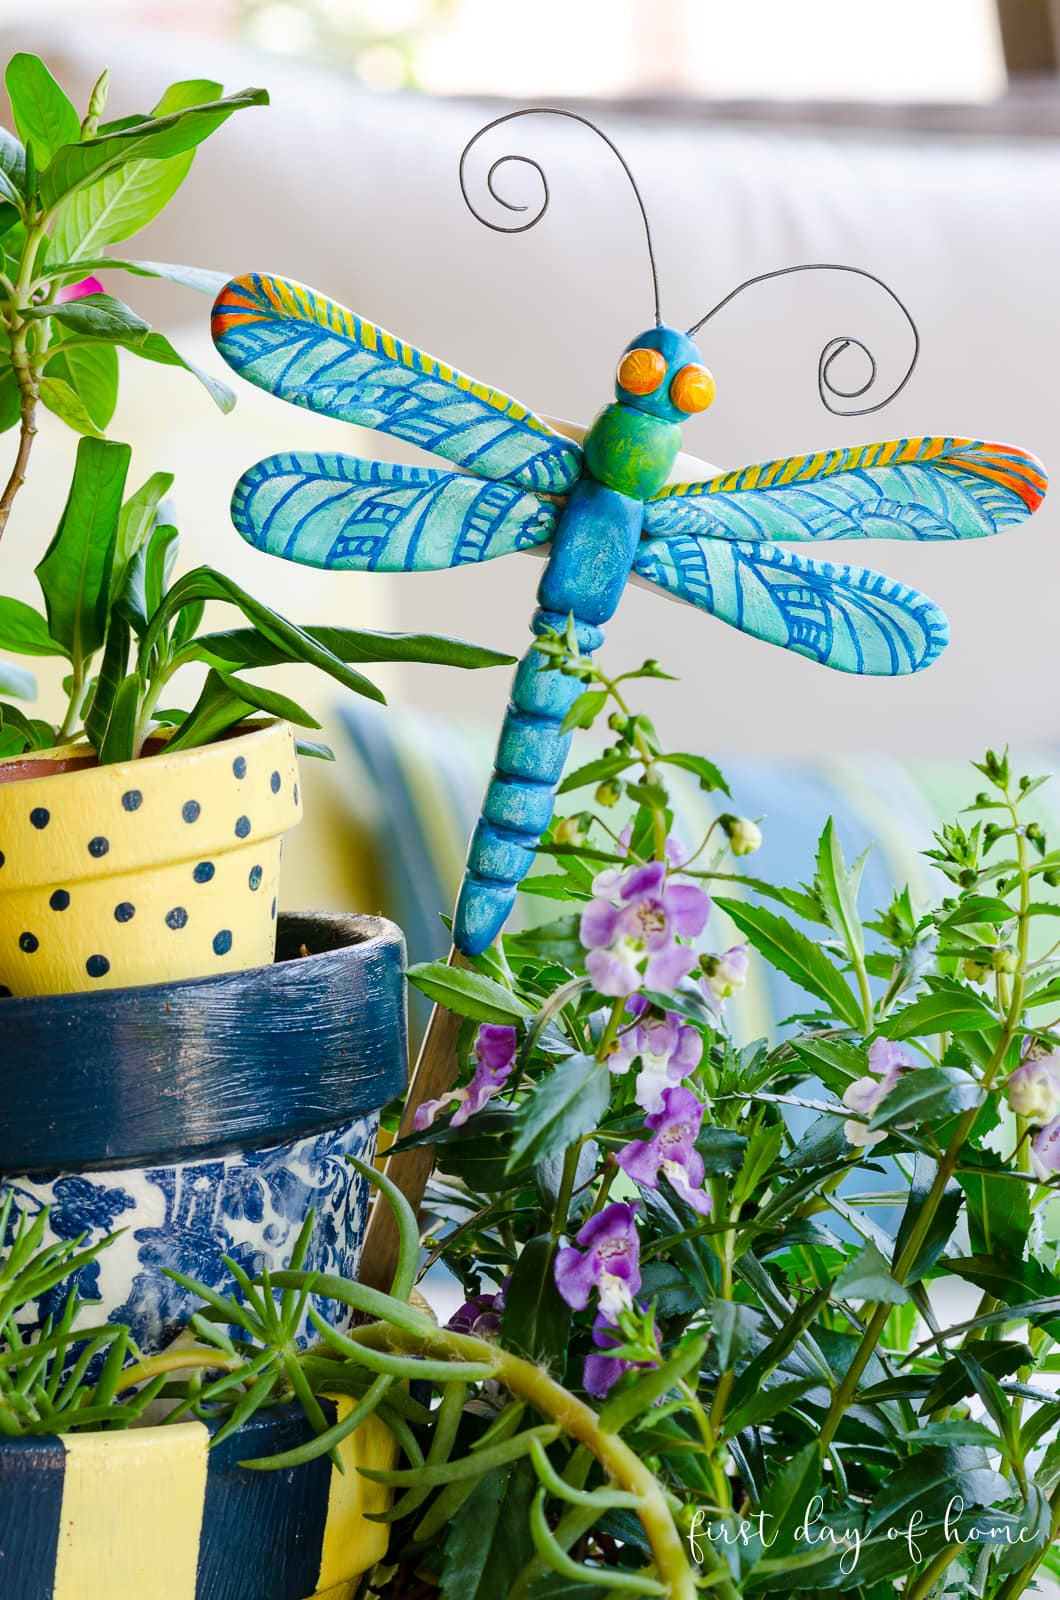 Dragonfly made of polymer clay sitting in painted pot tower